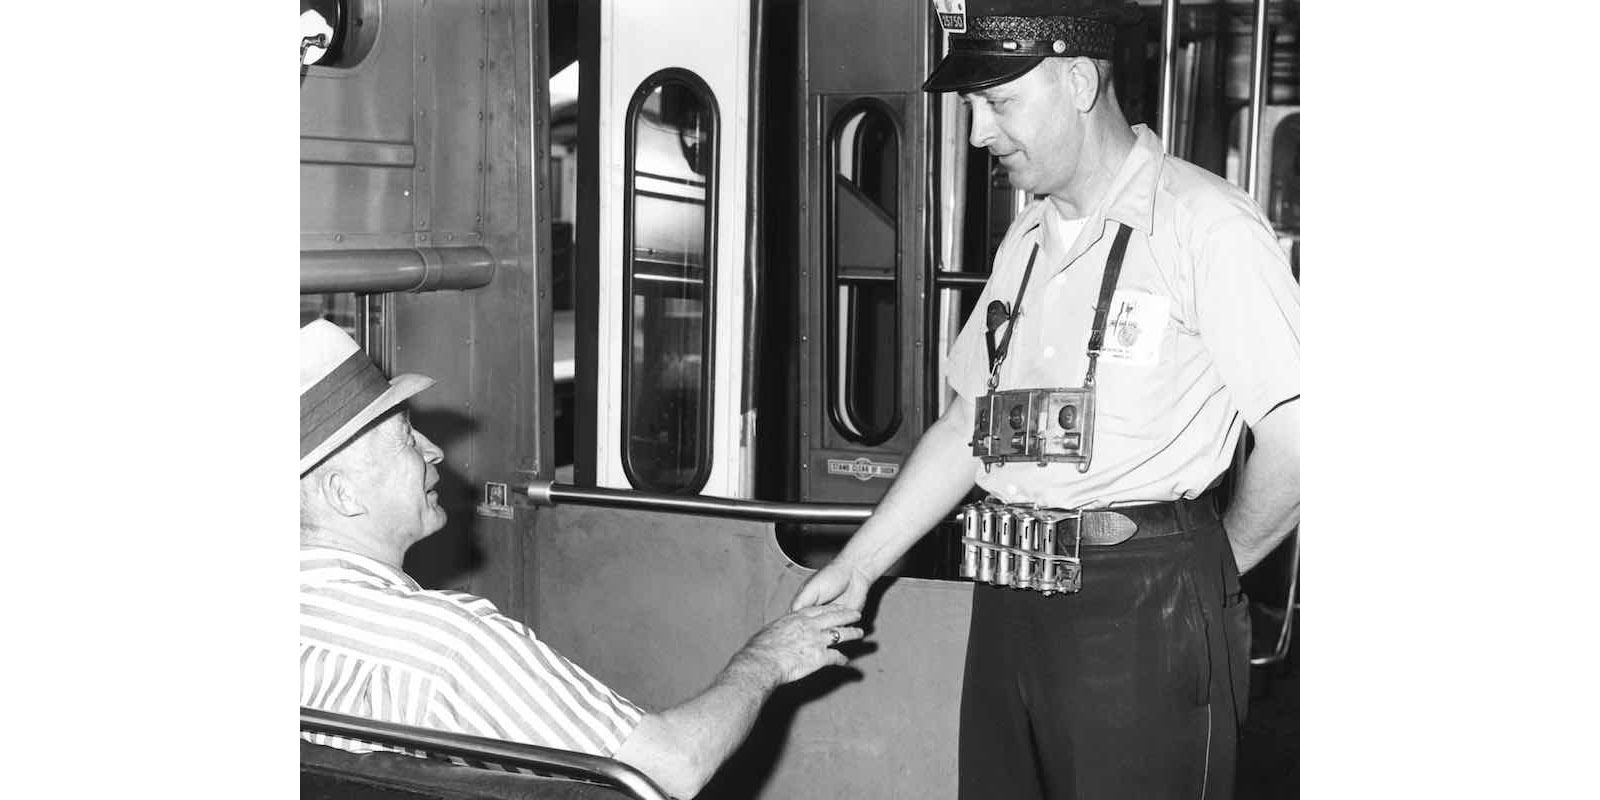 Before 1997, each CTA train had a conductor in addition to an operator. Here, a conductor accepts fares on board a train on the Ravenswood Line (now the Brown line) in 1964. (Courtesy CTA)